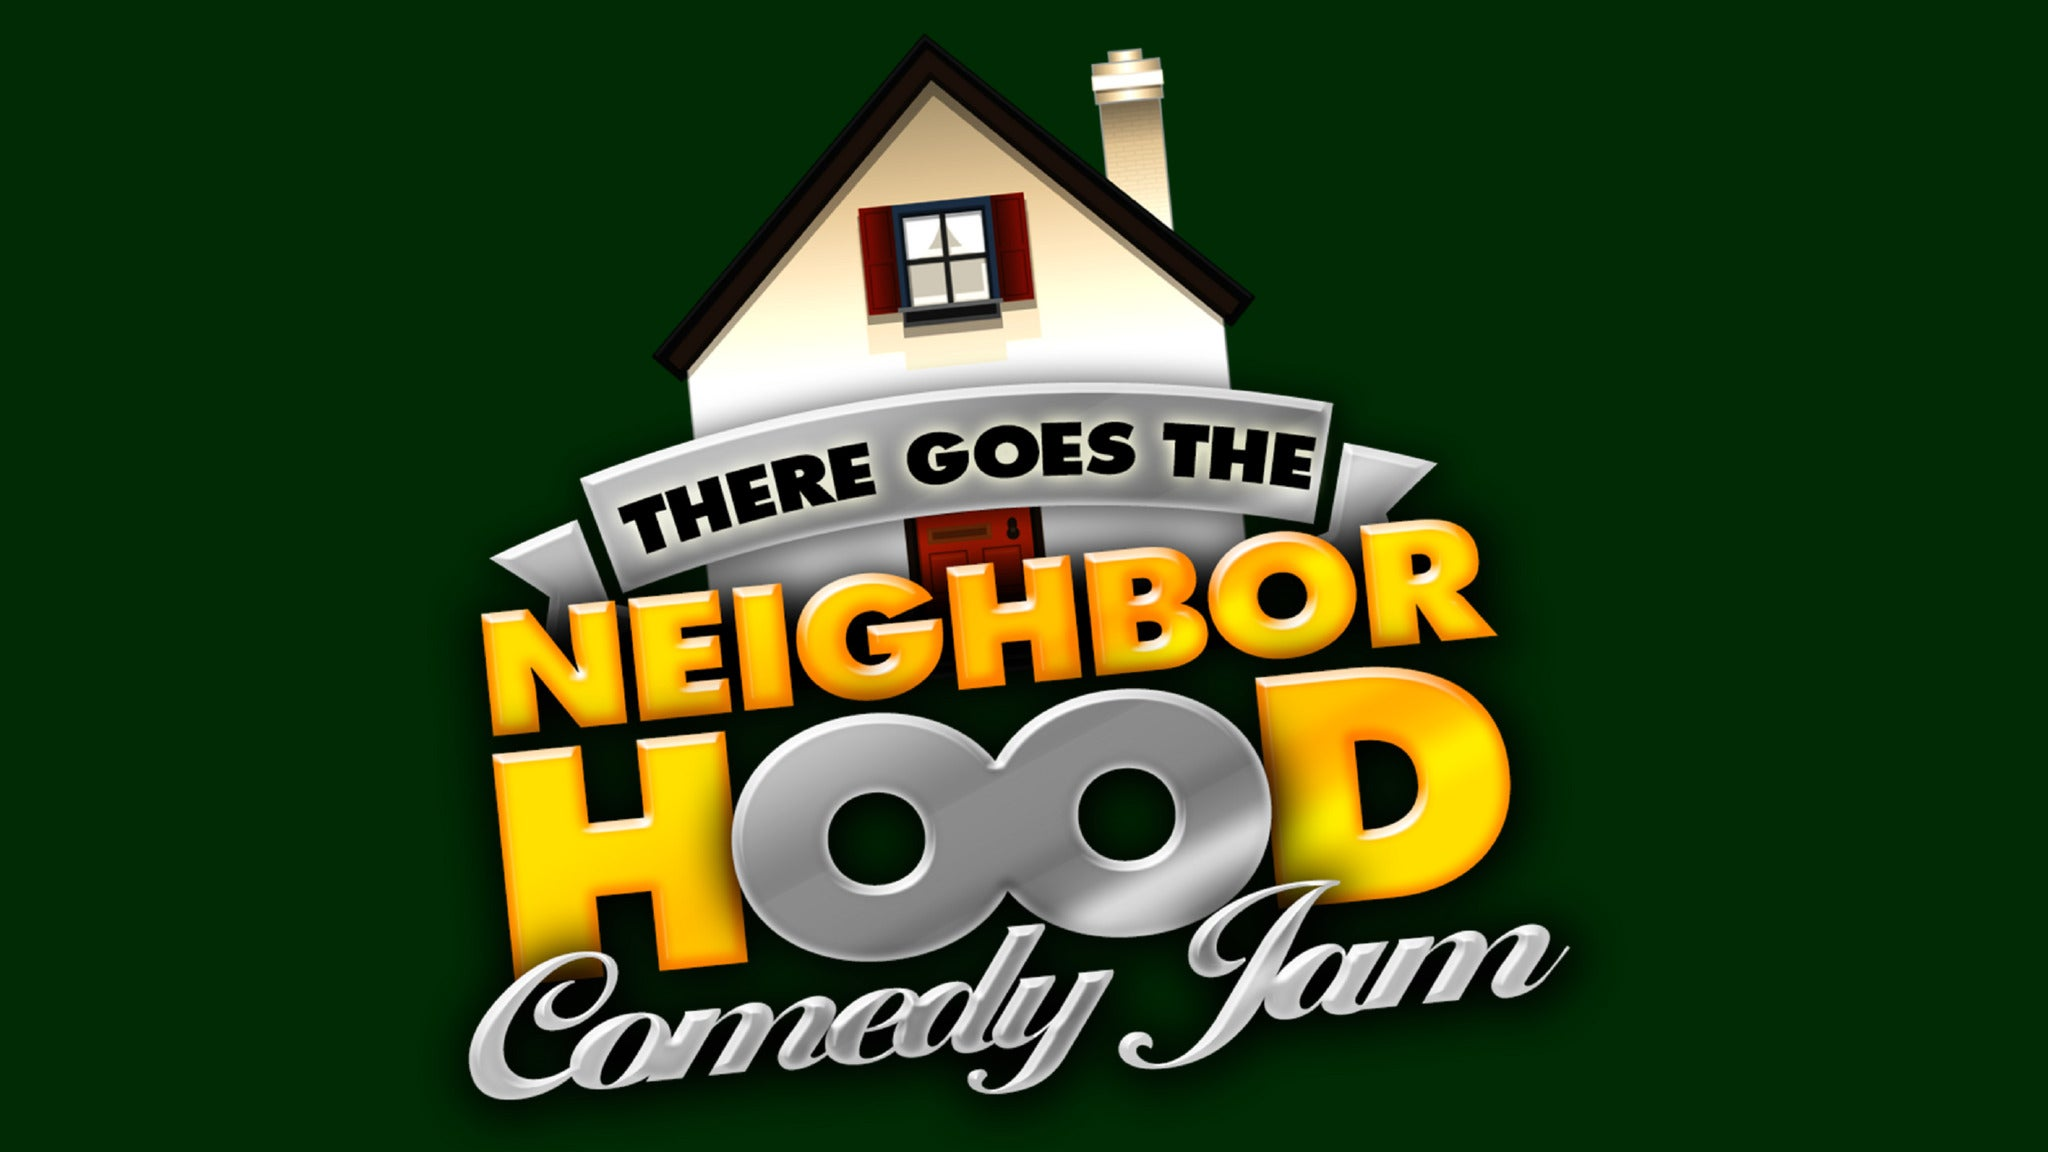 There Goes the Neighborhood Comedy Tour (Cancelled...